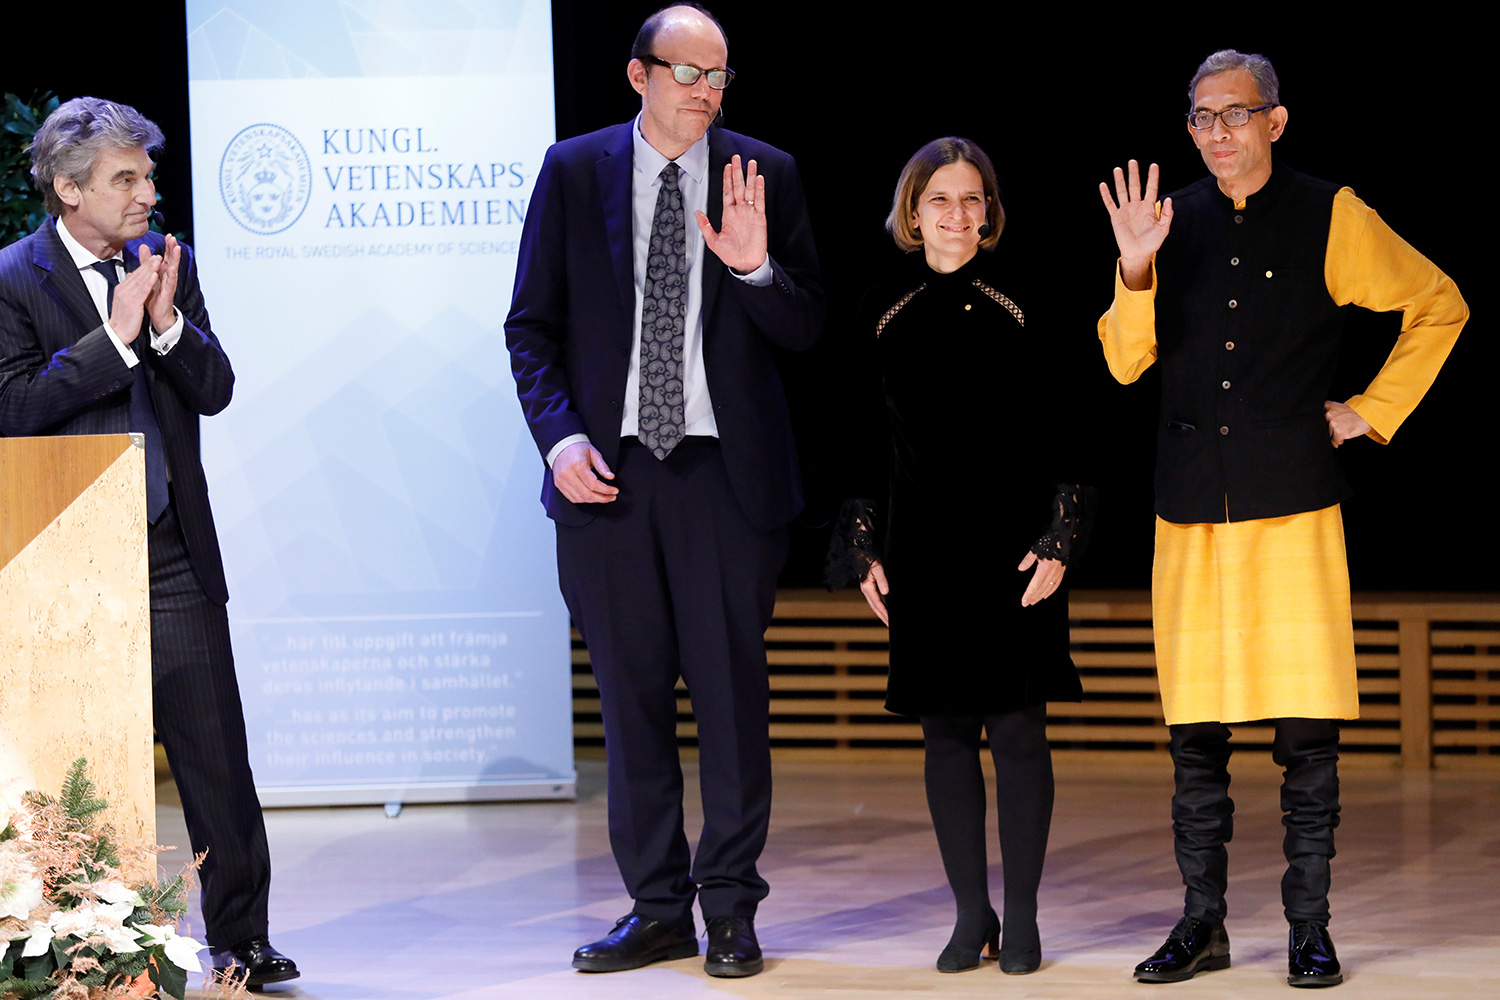 Image shows the three nobel laureates posting for pictures on the stage and waving at an audience, presumably to thundrous applause.